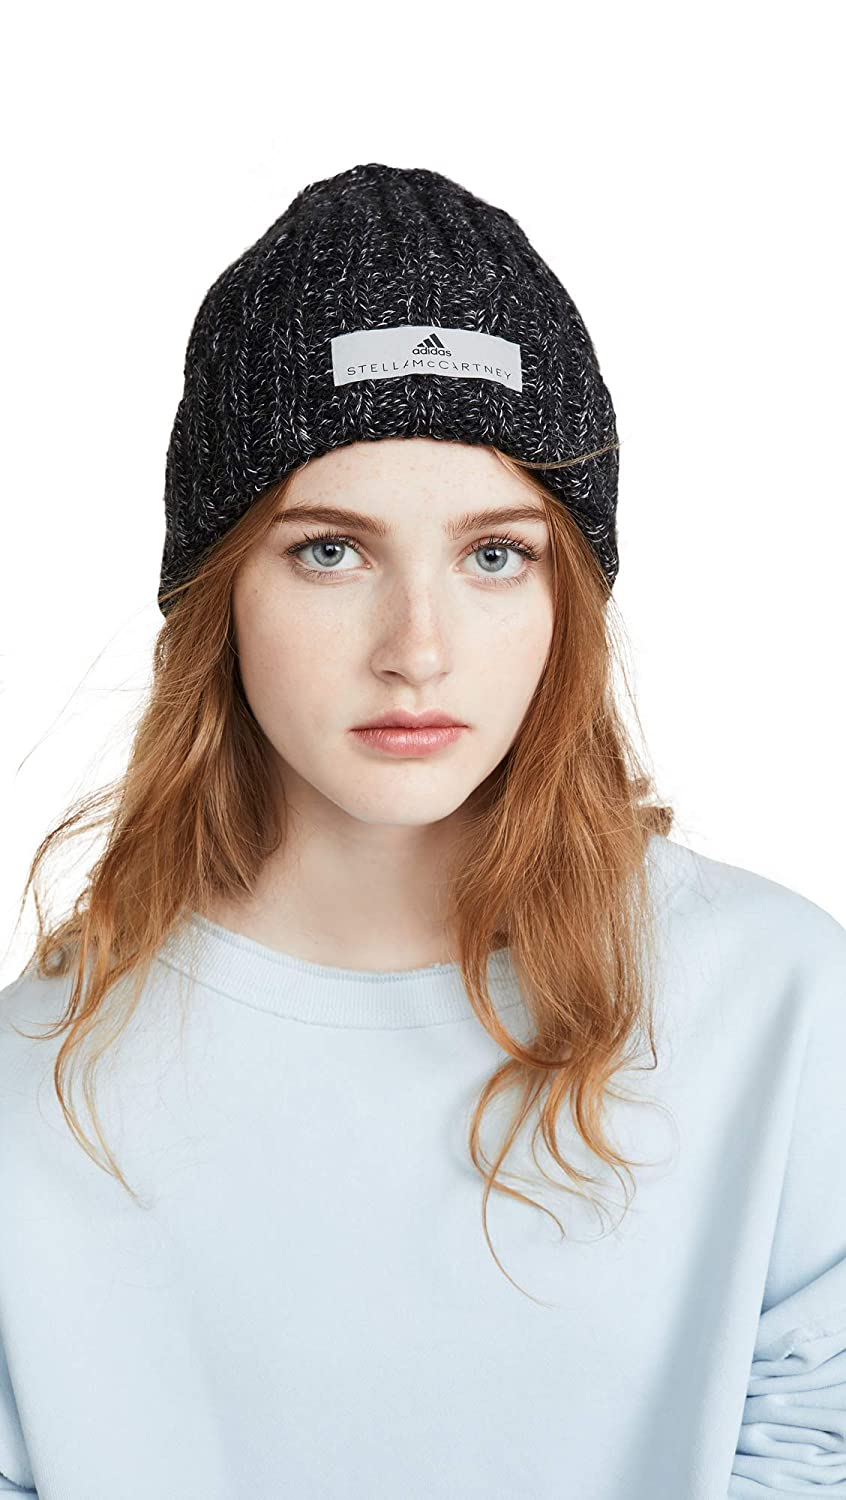 adidas by Stella McCartney Womens Beanie